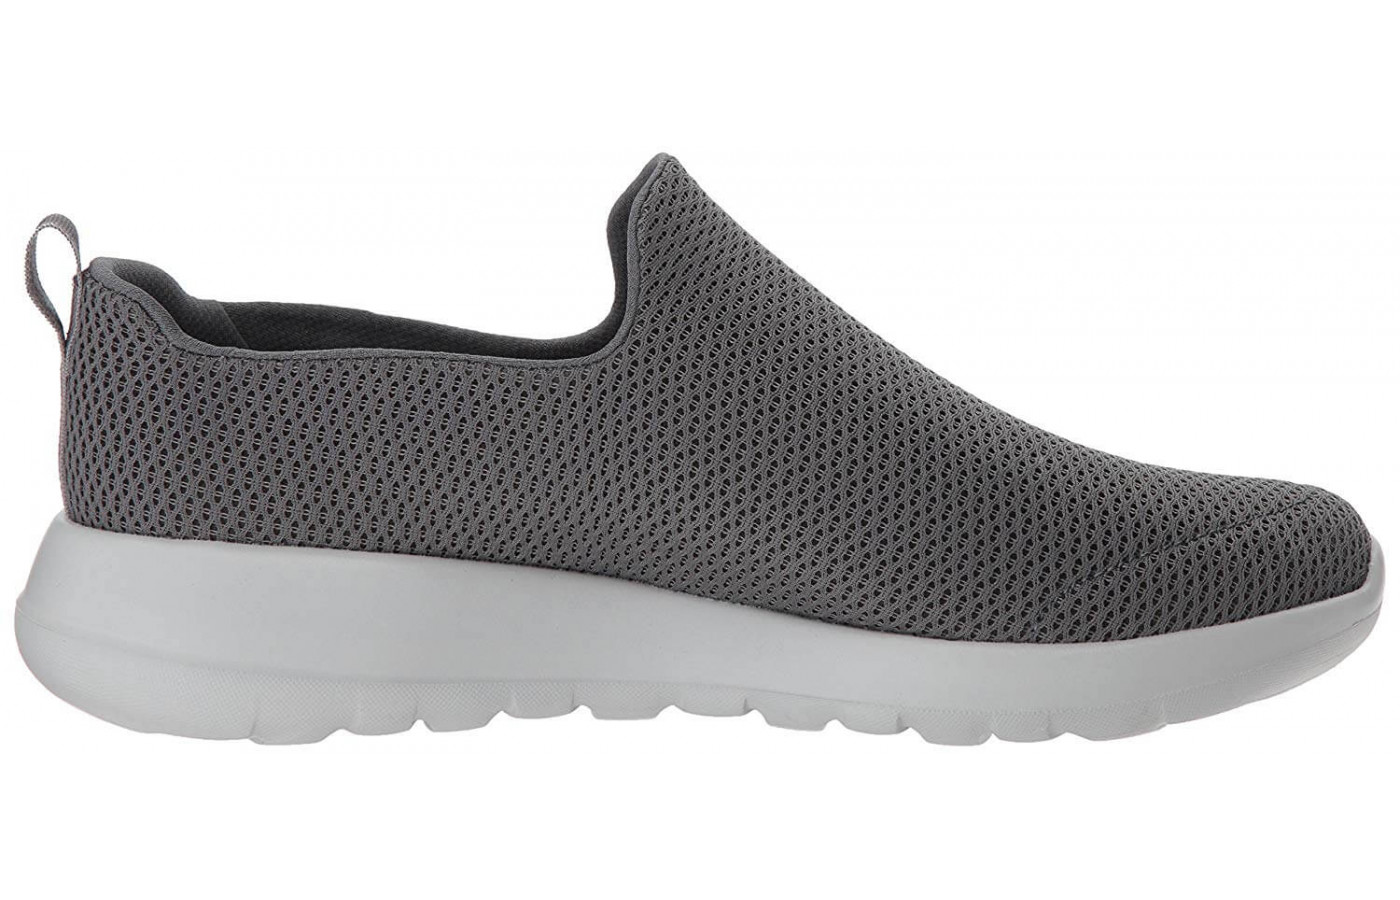 Skecher's 5GEN technology makes up the GoWalk Max's midsole and outsole